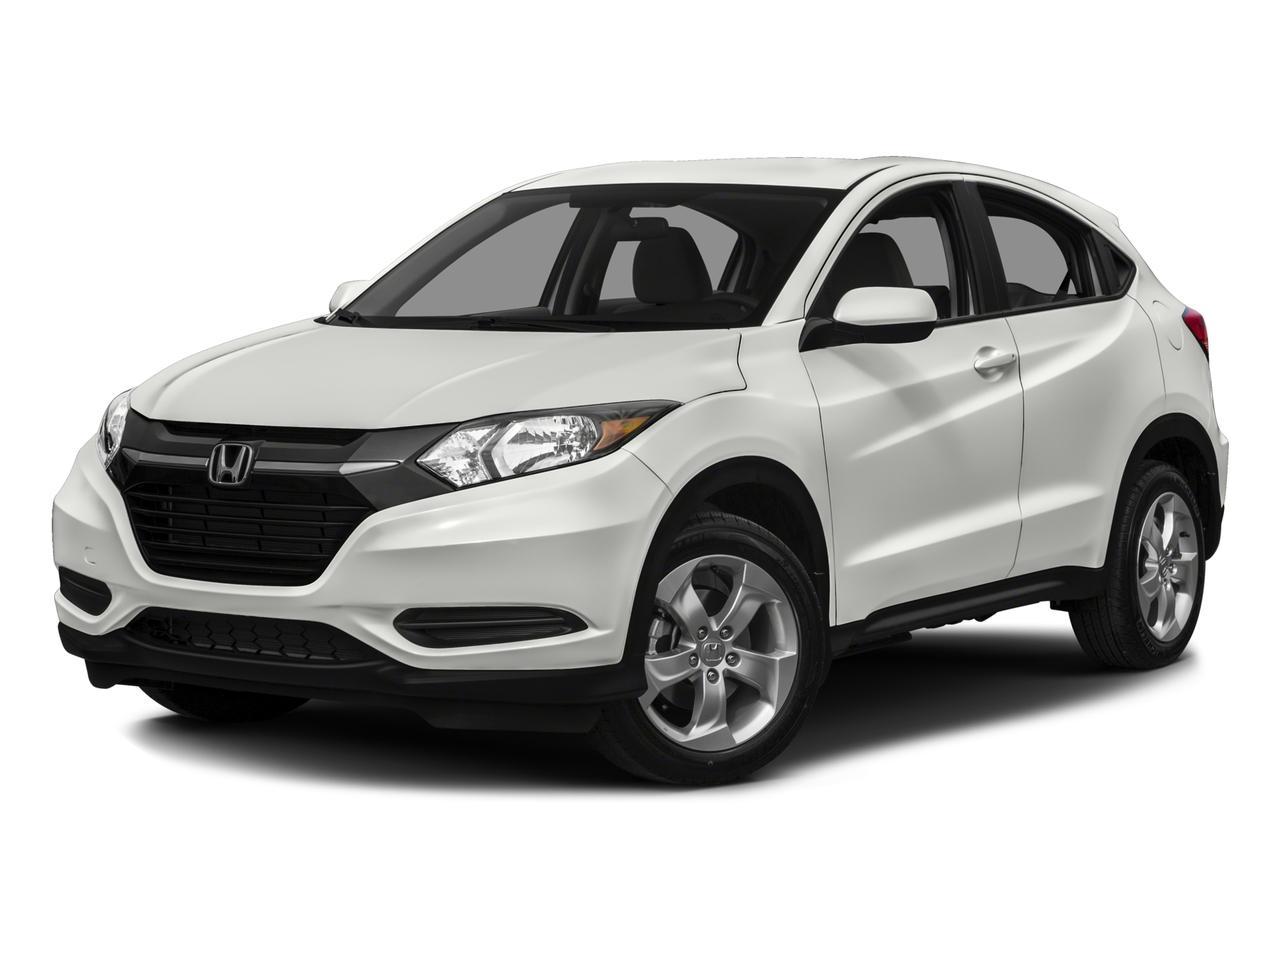 2016 Honda HR-V Vehicle Photo in Rockville, MD 20852